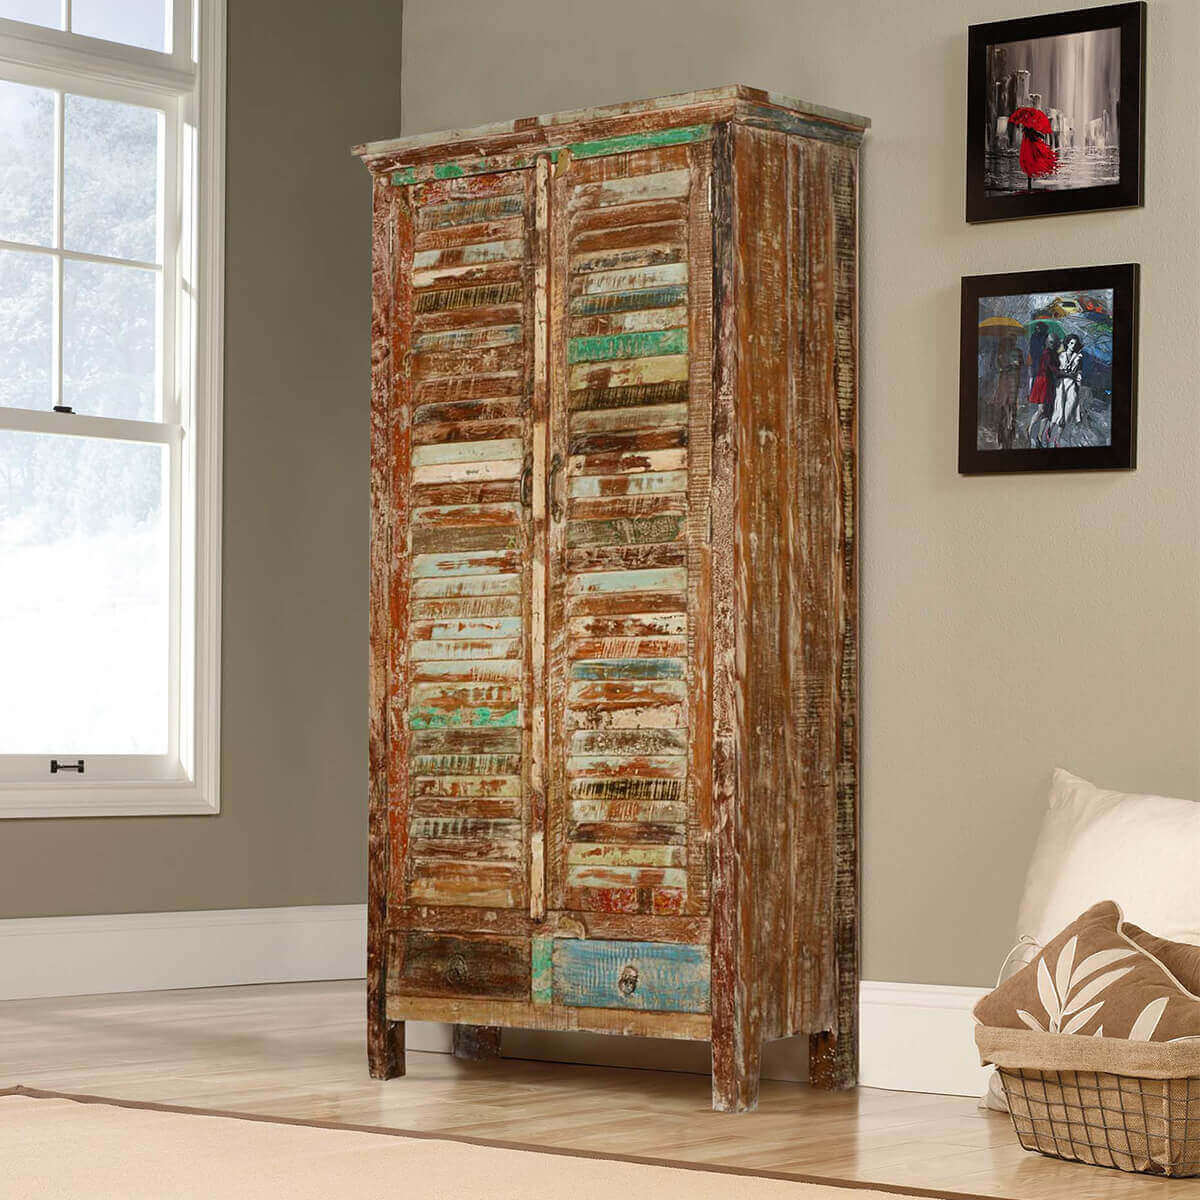 Rustic Shutter Door Reclaimed Wood Armoire Wardrobe Cabinet - Shutter Door Reclaimed Wood Armoire Wardrobe Cabinet